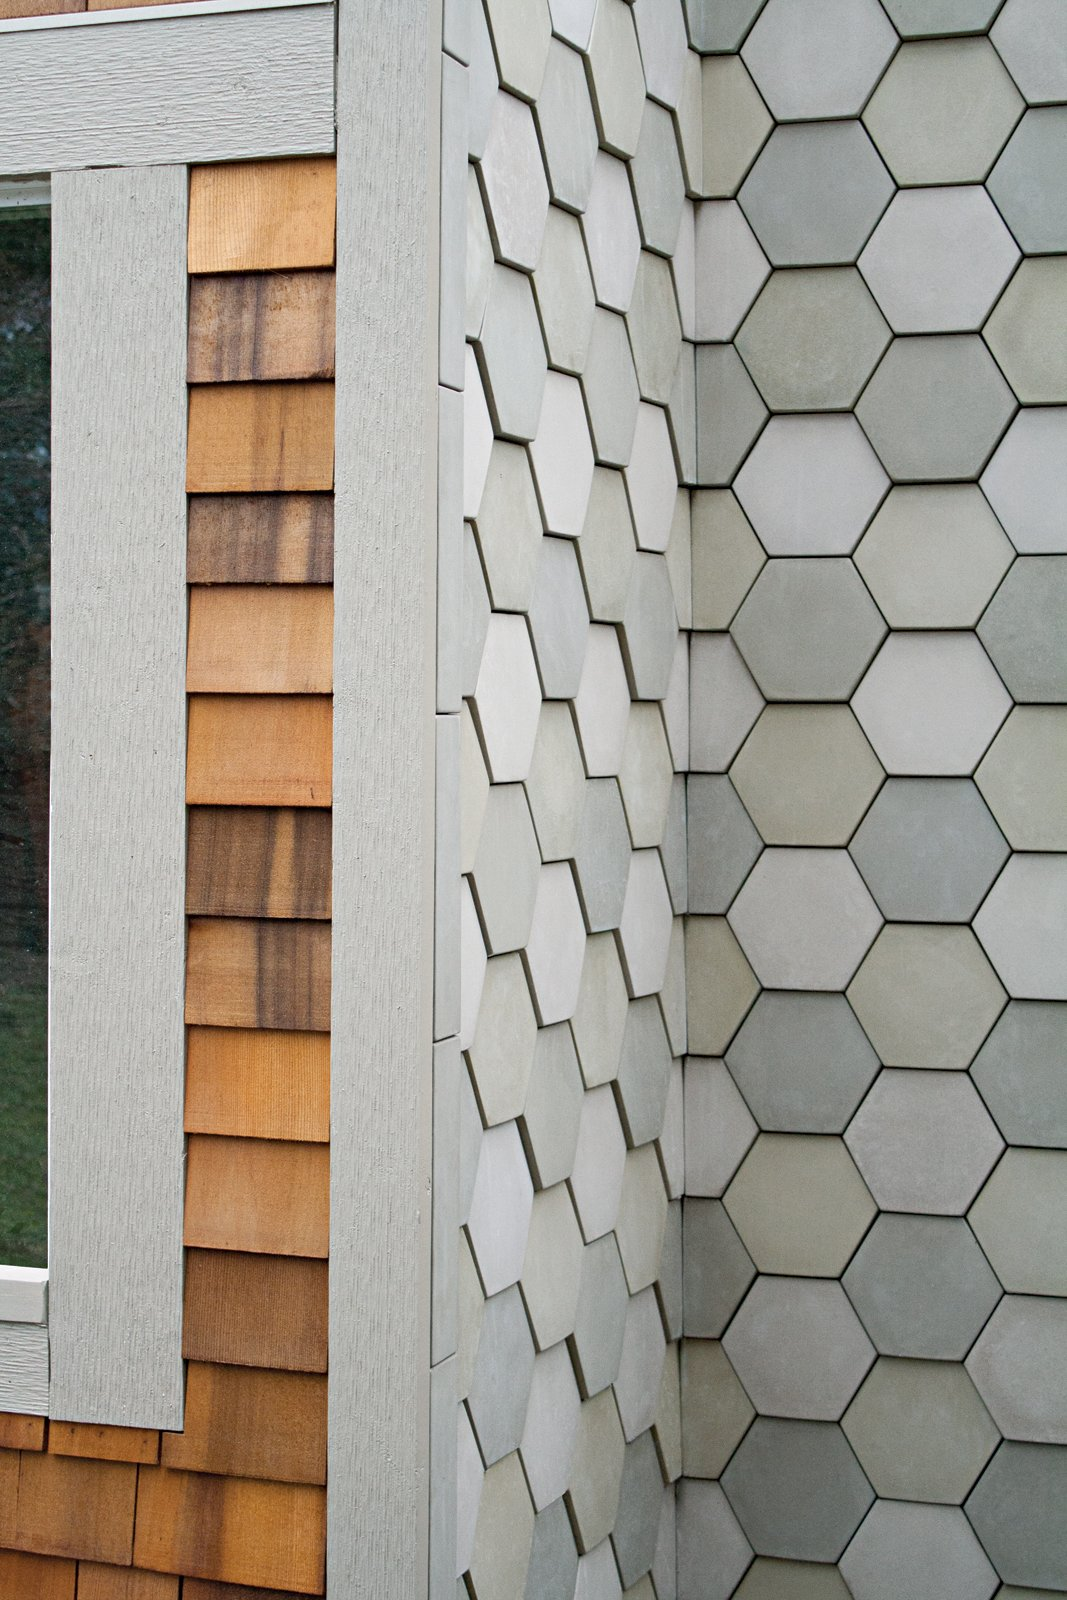 The Portland Cement Company makes these tiles out of a proprietary concrete, which is cast in a wedge-shaped seven-inch-hexagon mold and left to dry overnight, then for a few weeks on a baking sheet.  50+ Modern Tile Ideas for Walls, Floors and Ceilings by William Lamb from How to Design with Hexagon Patterns